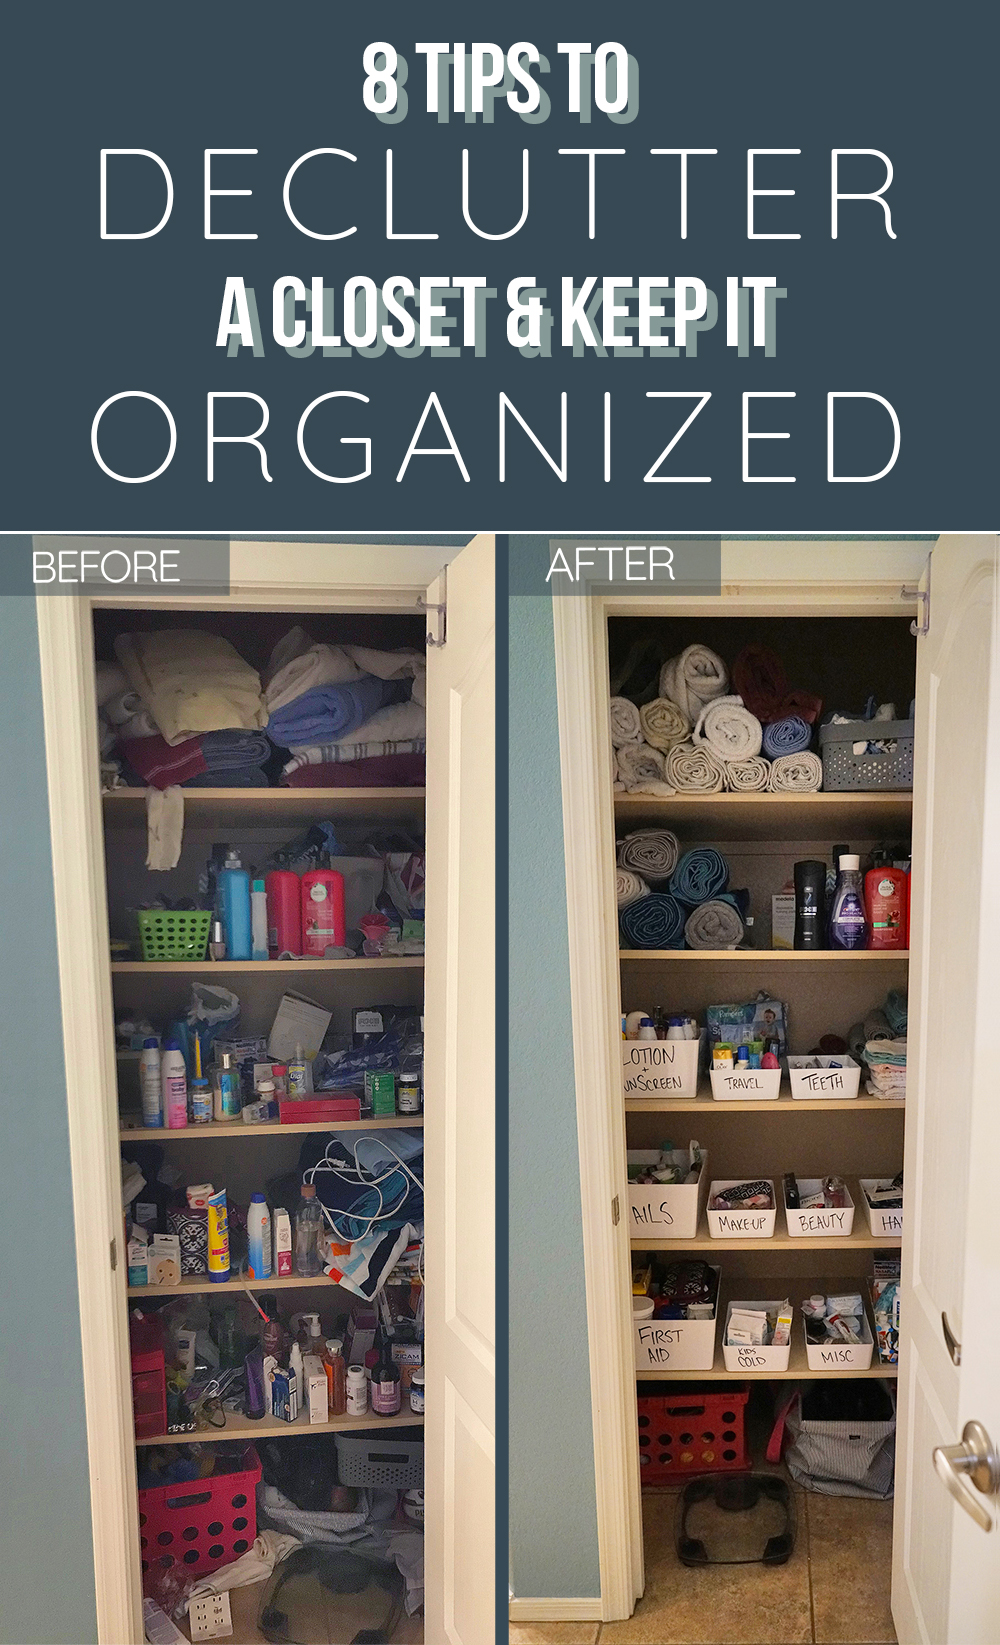 declutter a closet - before and after